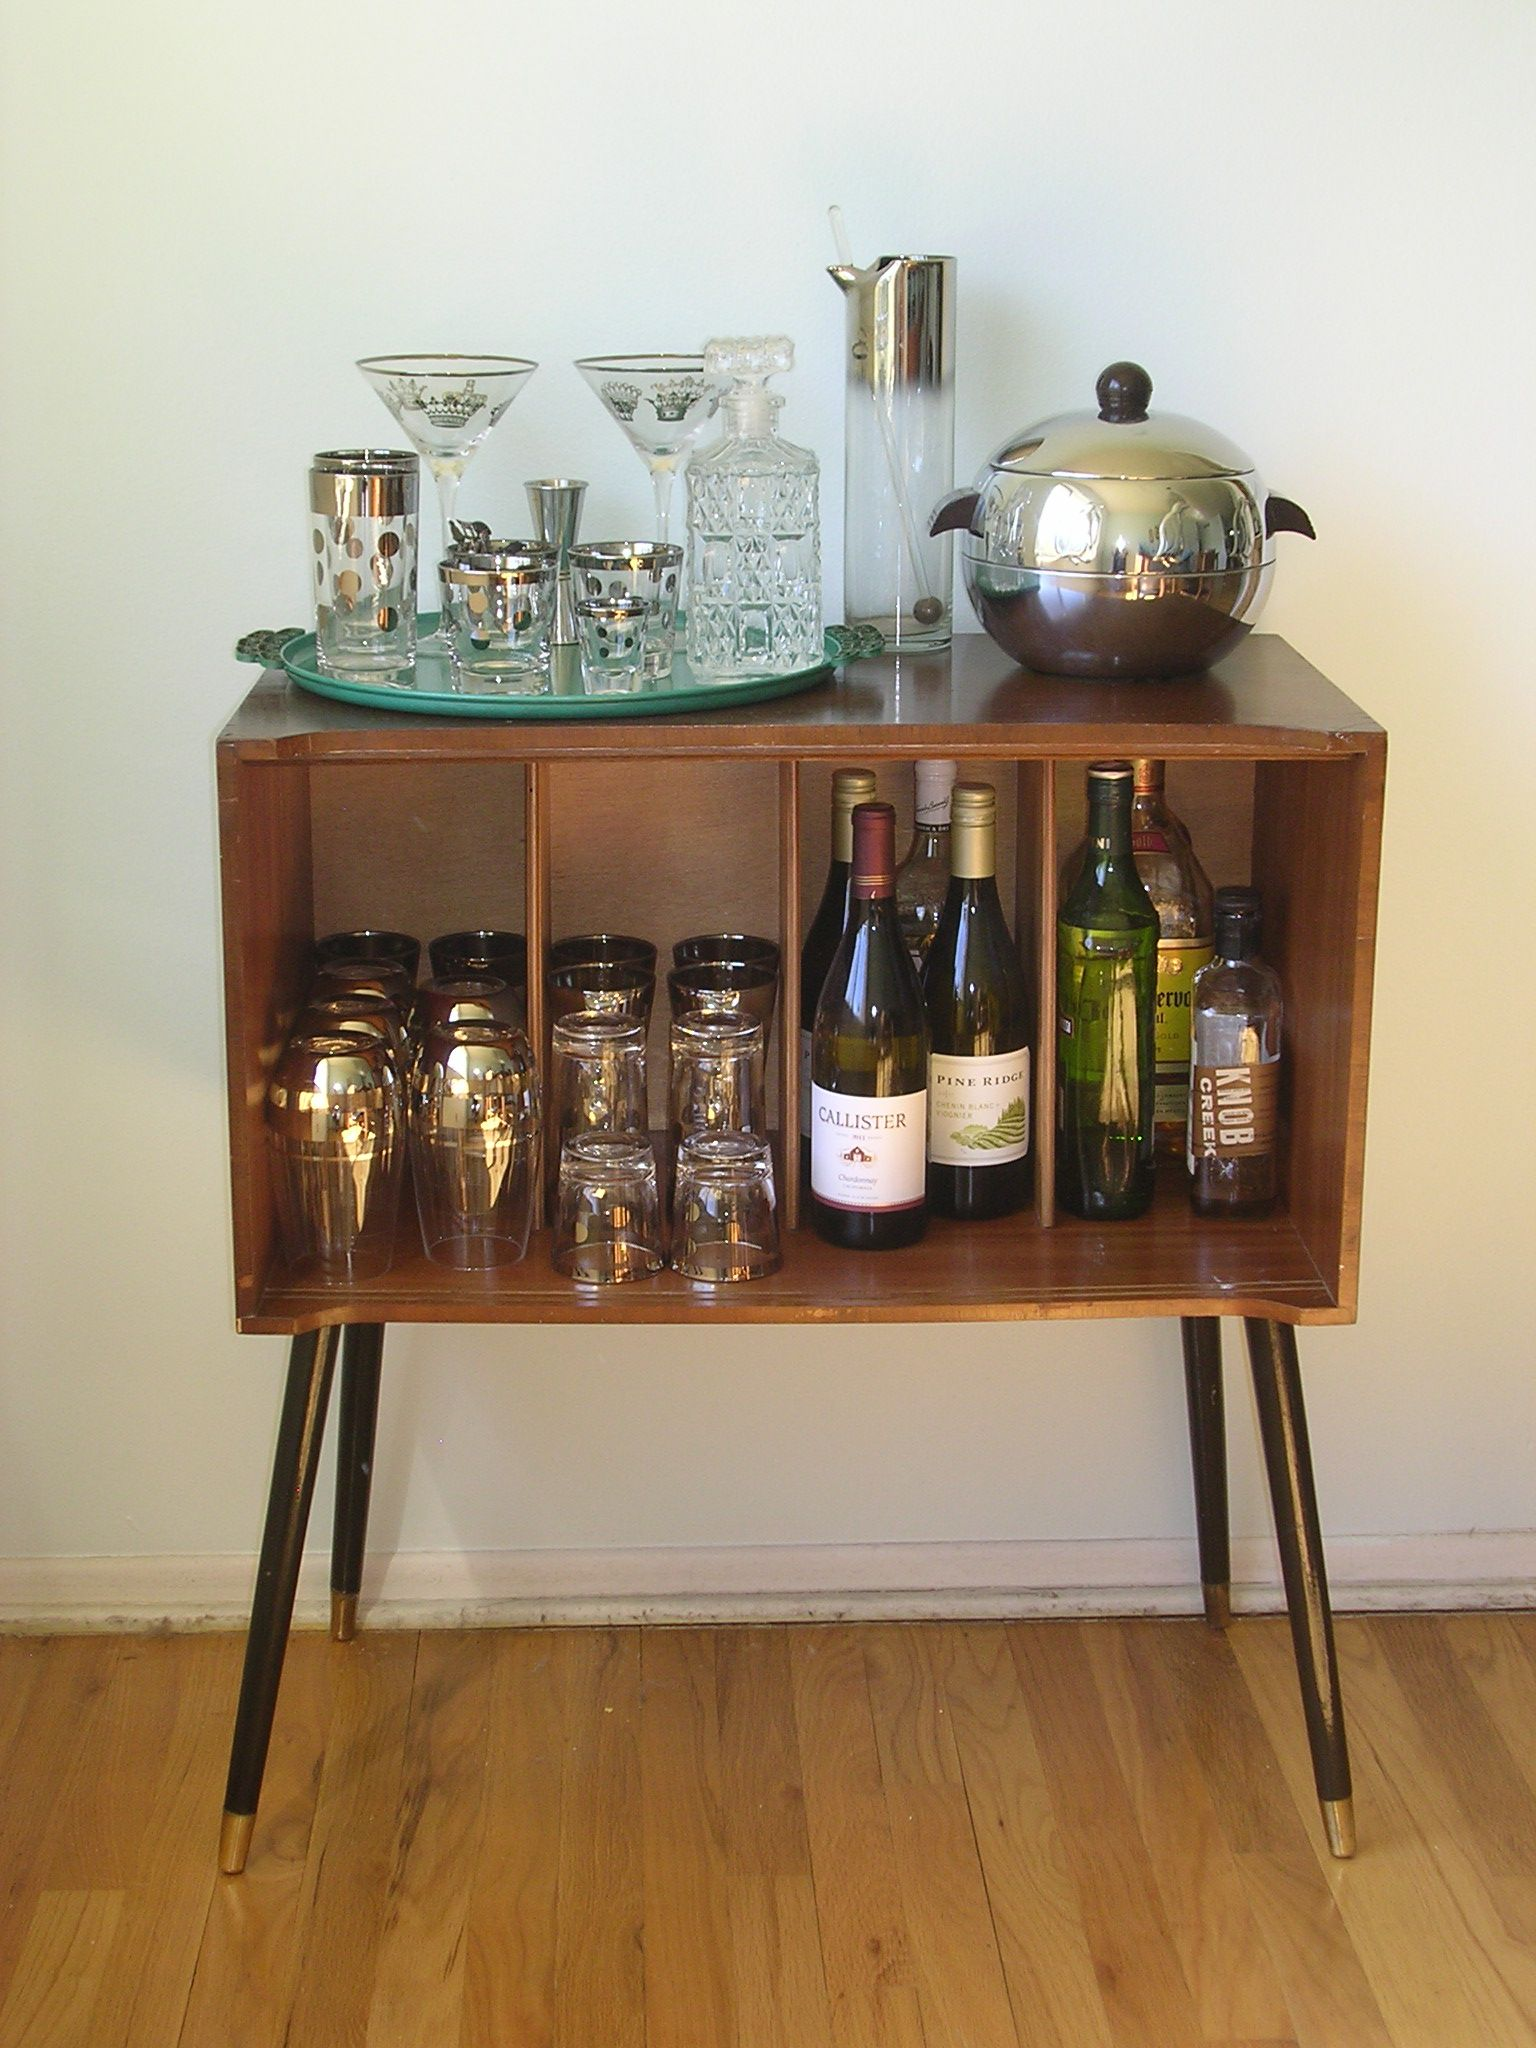 mid century record cabinet. Cute Alternative To A Bar Cart - Midcentury Record Cabinet Turned Into Bar! Mid Century S